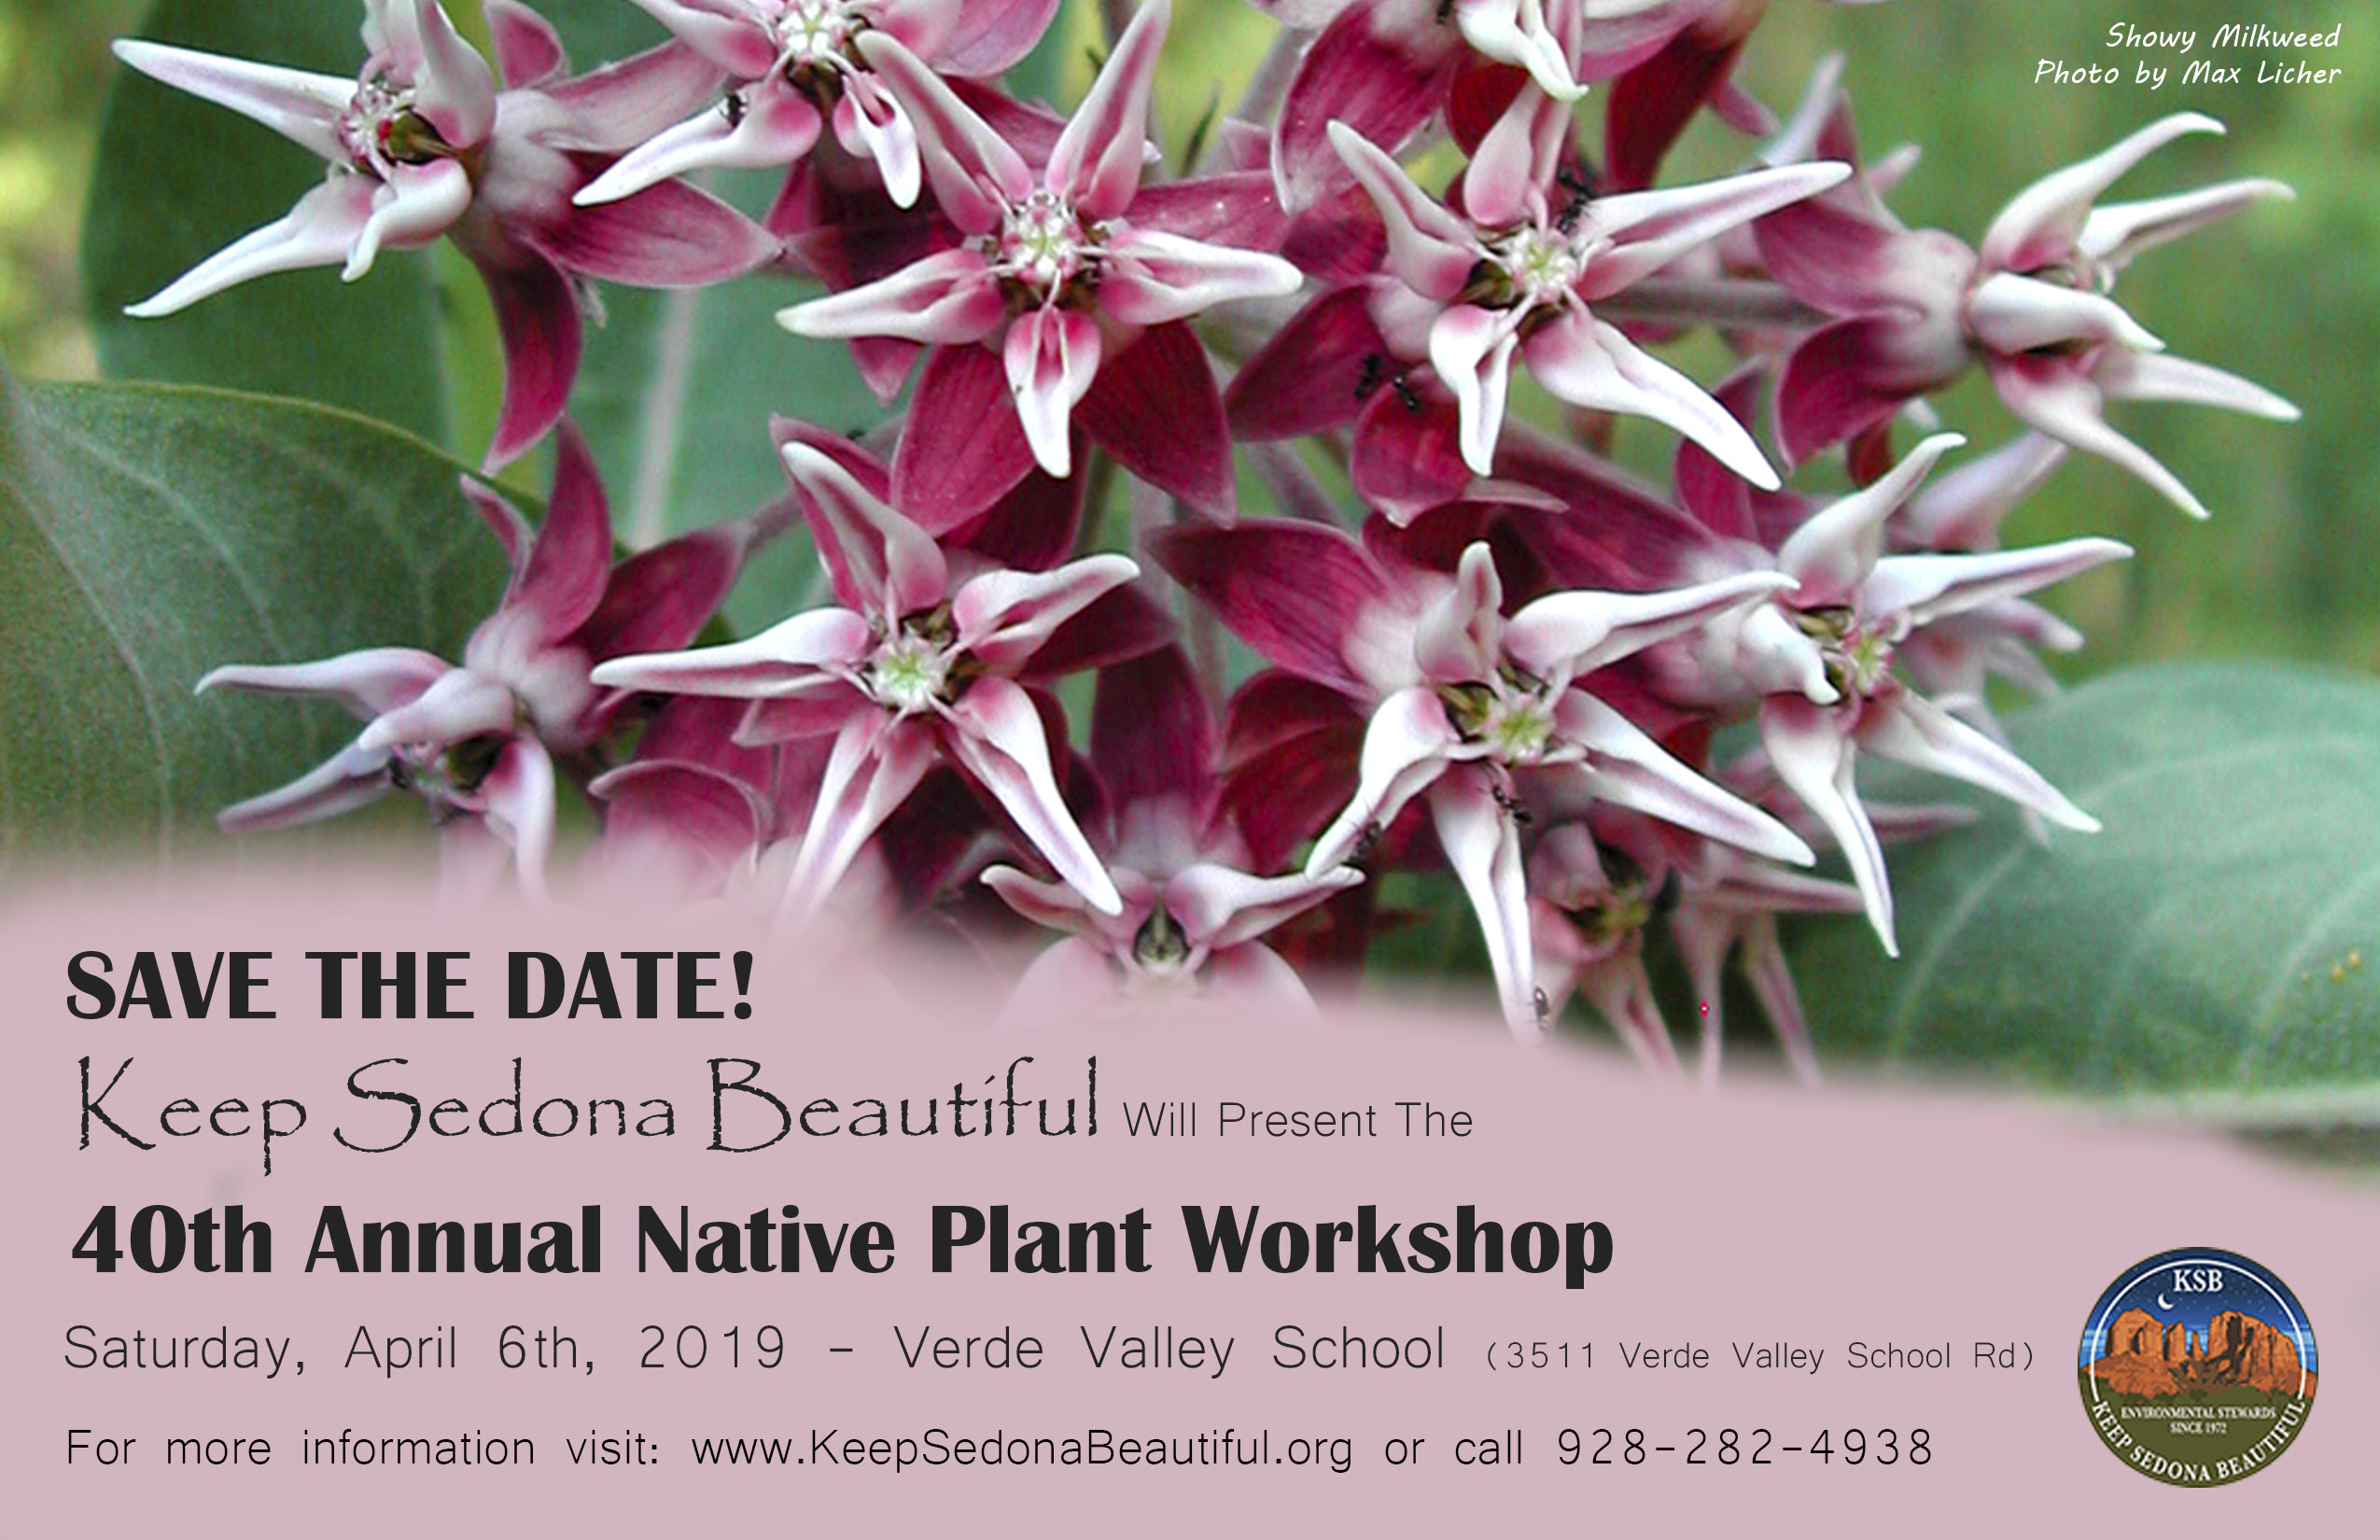 2019: The 40th Annual Native Plant Workshop - Recap - Keep